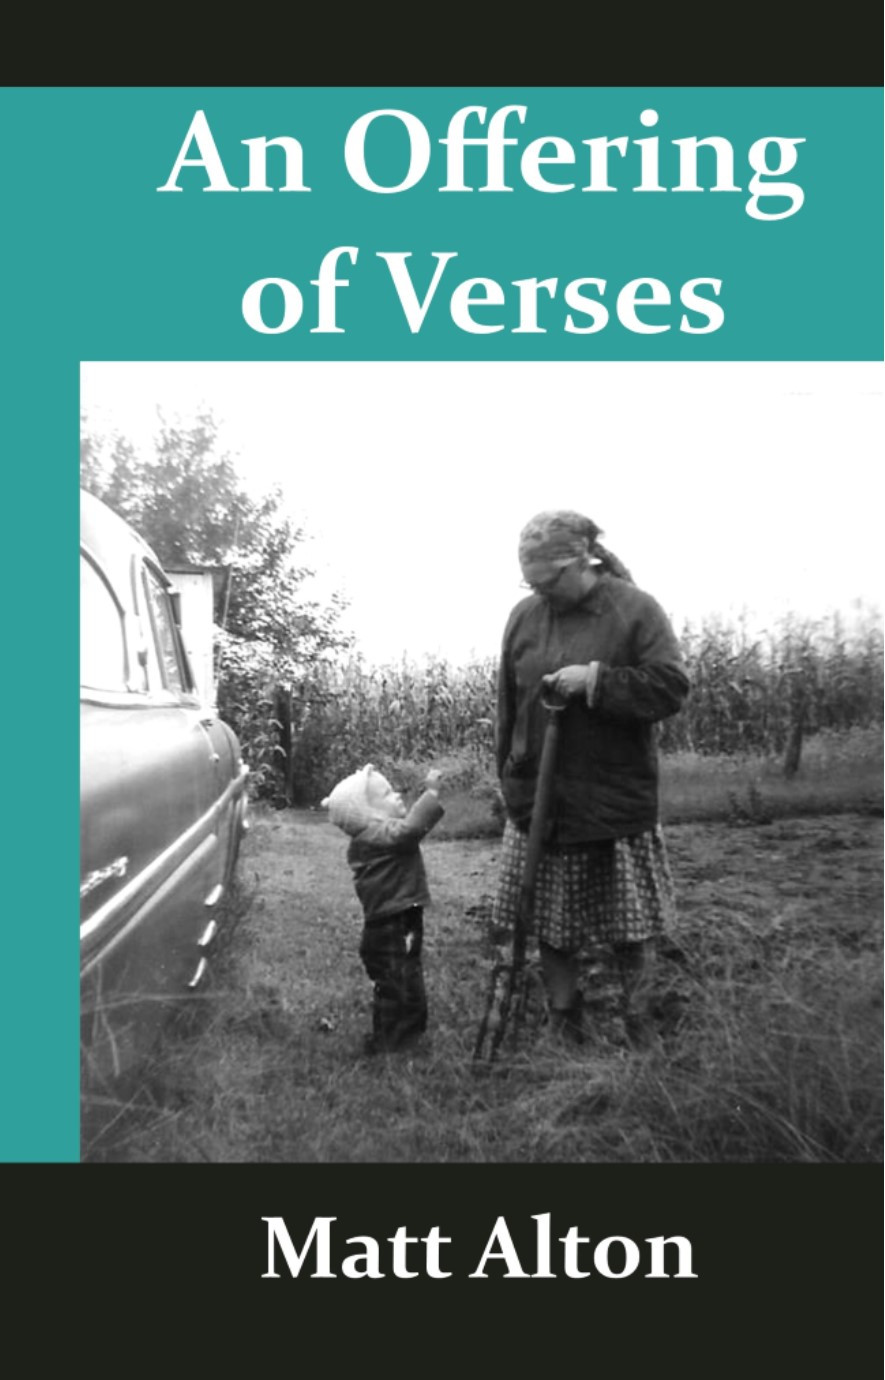 An Offering of Verses, poetry, poetry books, great poetry